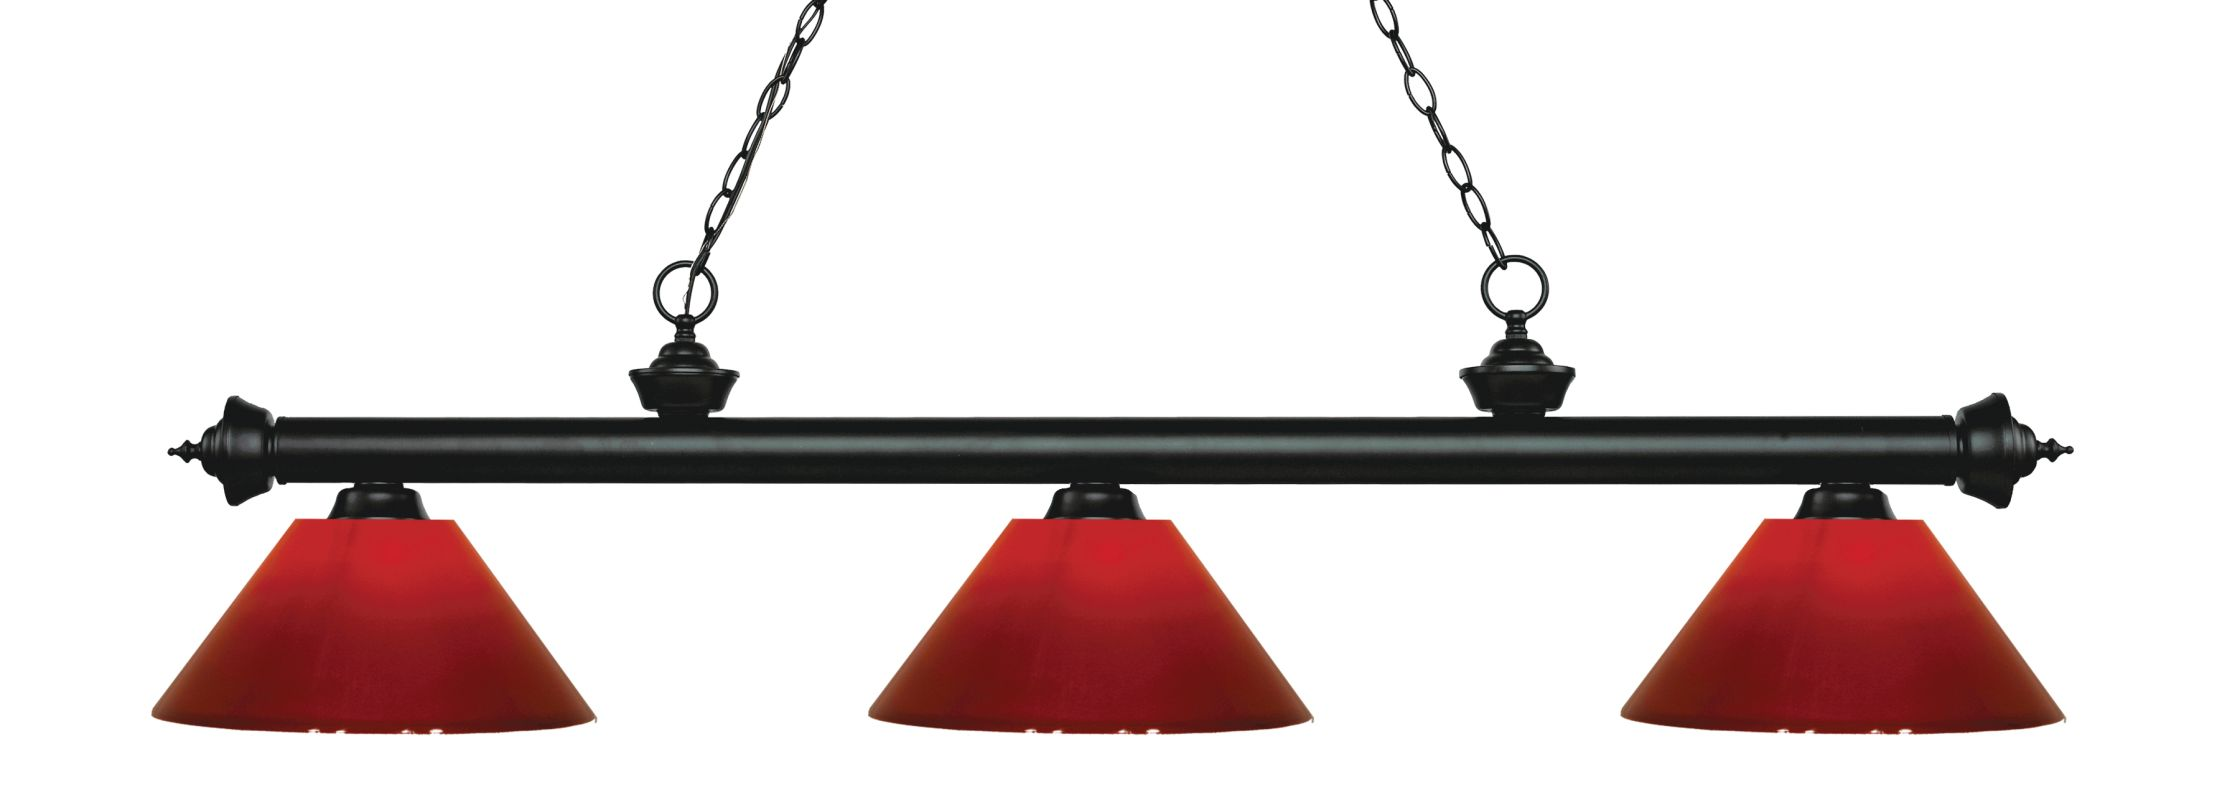 Z-Lite 200-3-PRD Riviera 3 Light Island/Billiard Chandelier with Red Sale $242.00 ITEM: bci2734658 ID#:200-3MB-PRD UPC: 685659054378 :